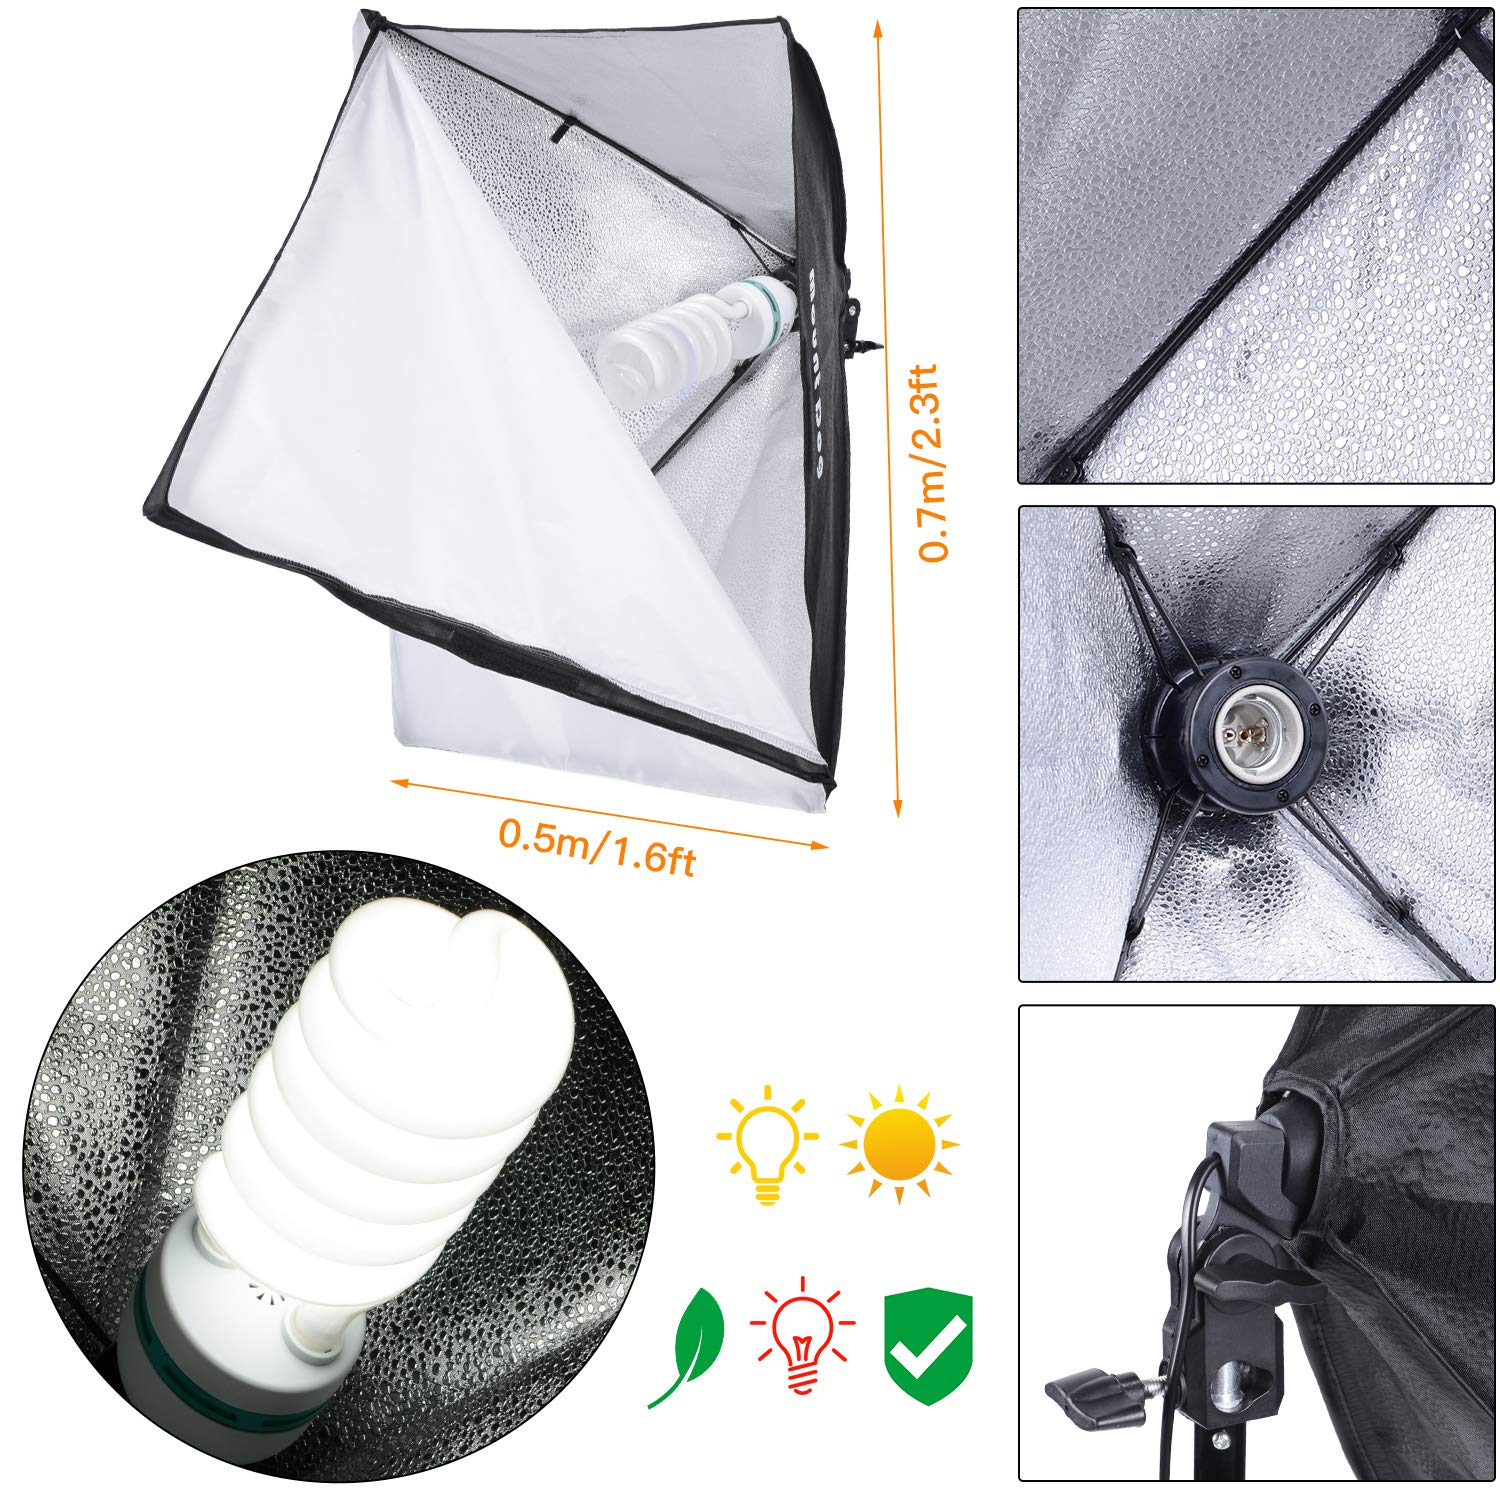 MOUNTDOG 1350W Photography Softbox Lighting Kit 20''X28'' Professional Continuous Light System with 3pcs E27 Video Bulbs 5500K Photo Studio Equipment for Filming Model Portraits Advertising Shooting by MOUNTDOG (Image #5)